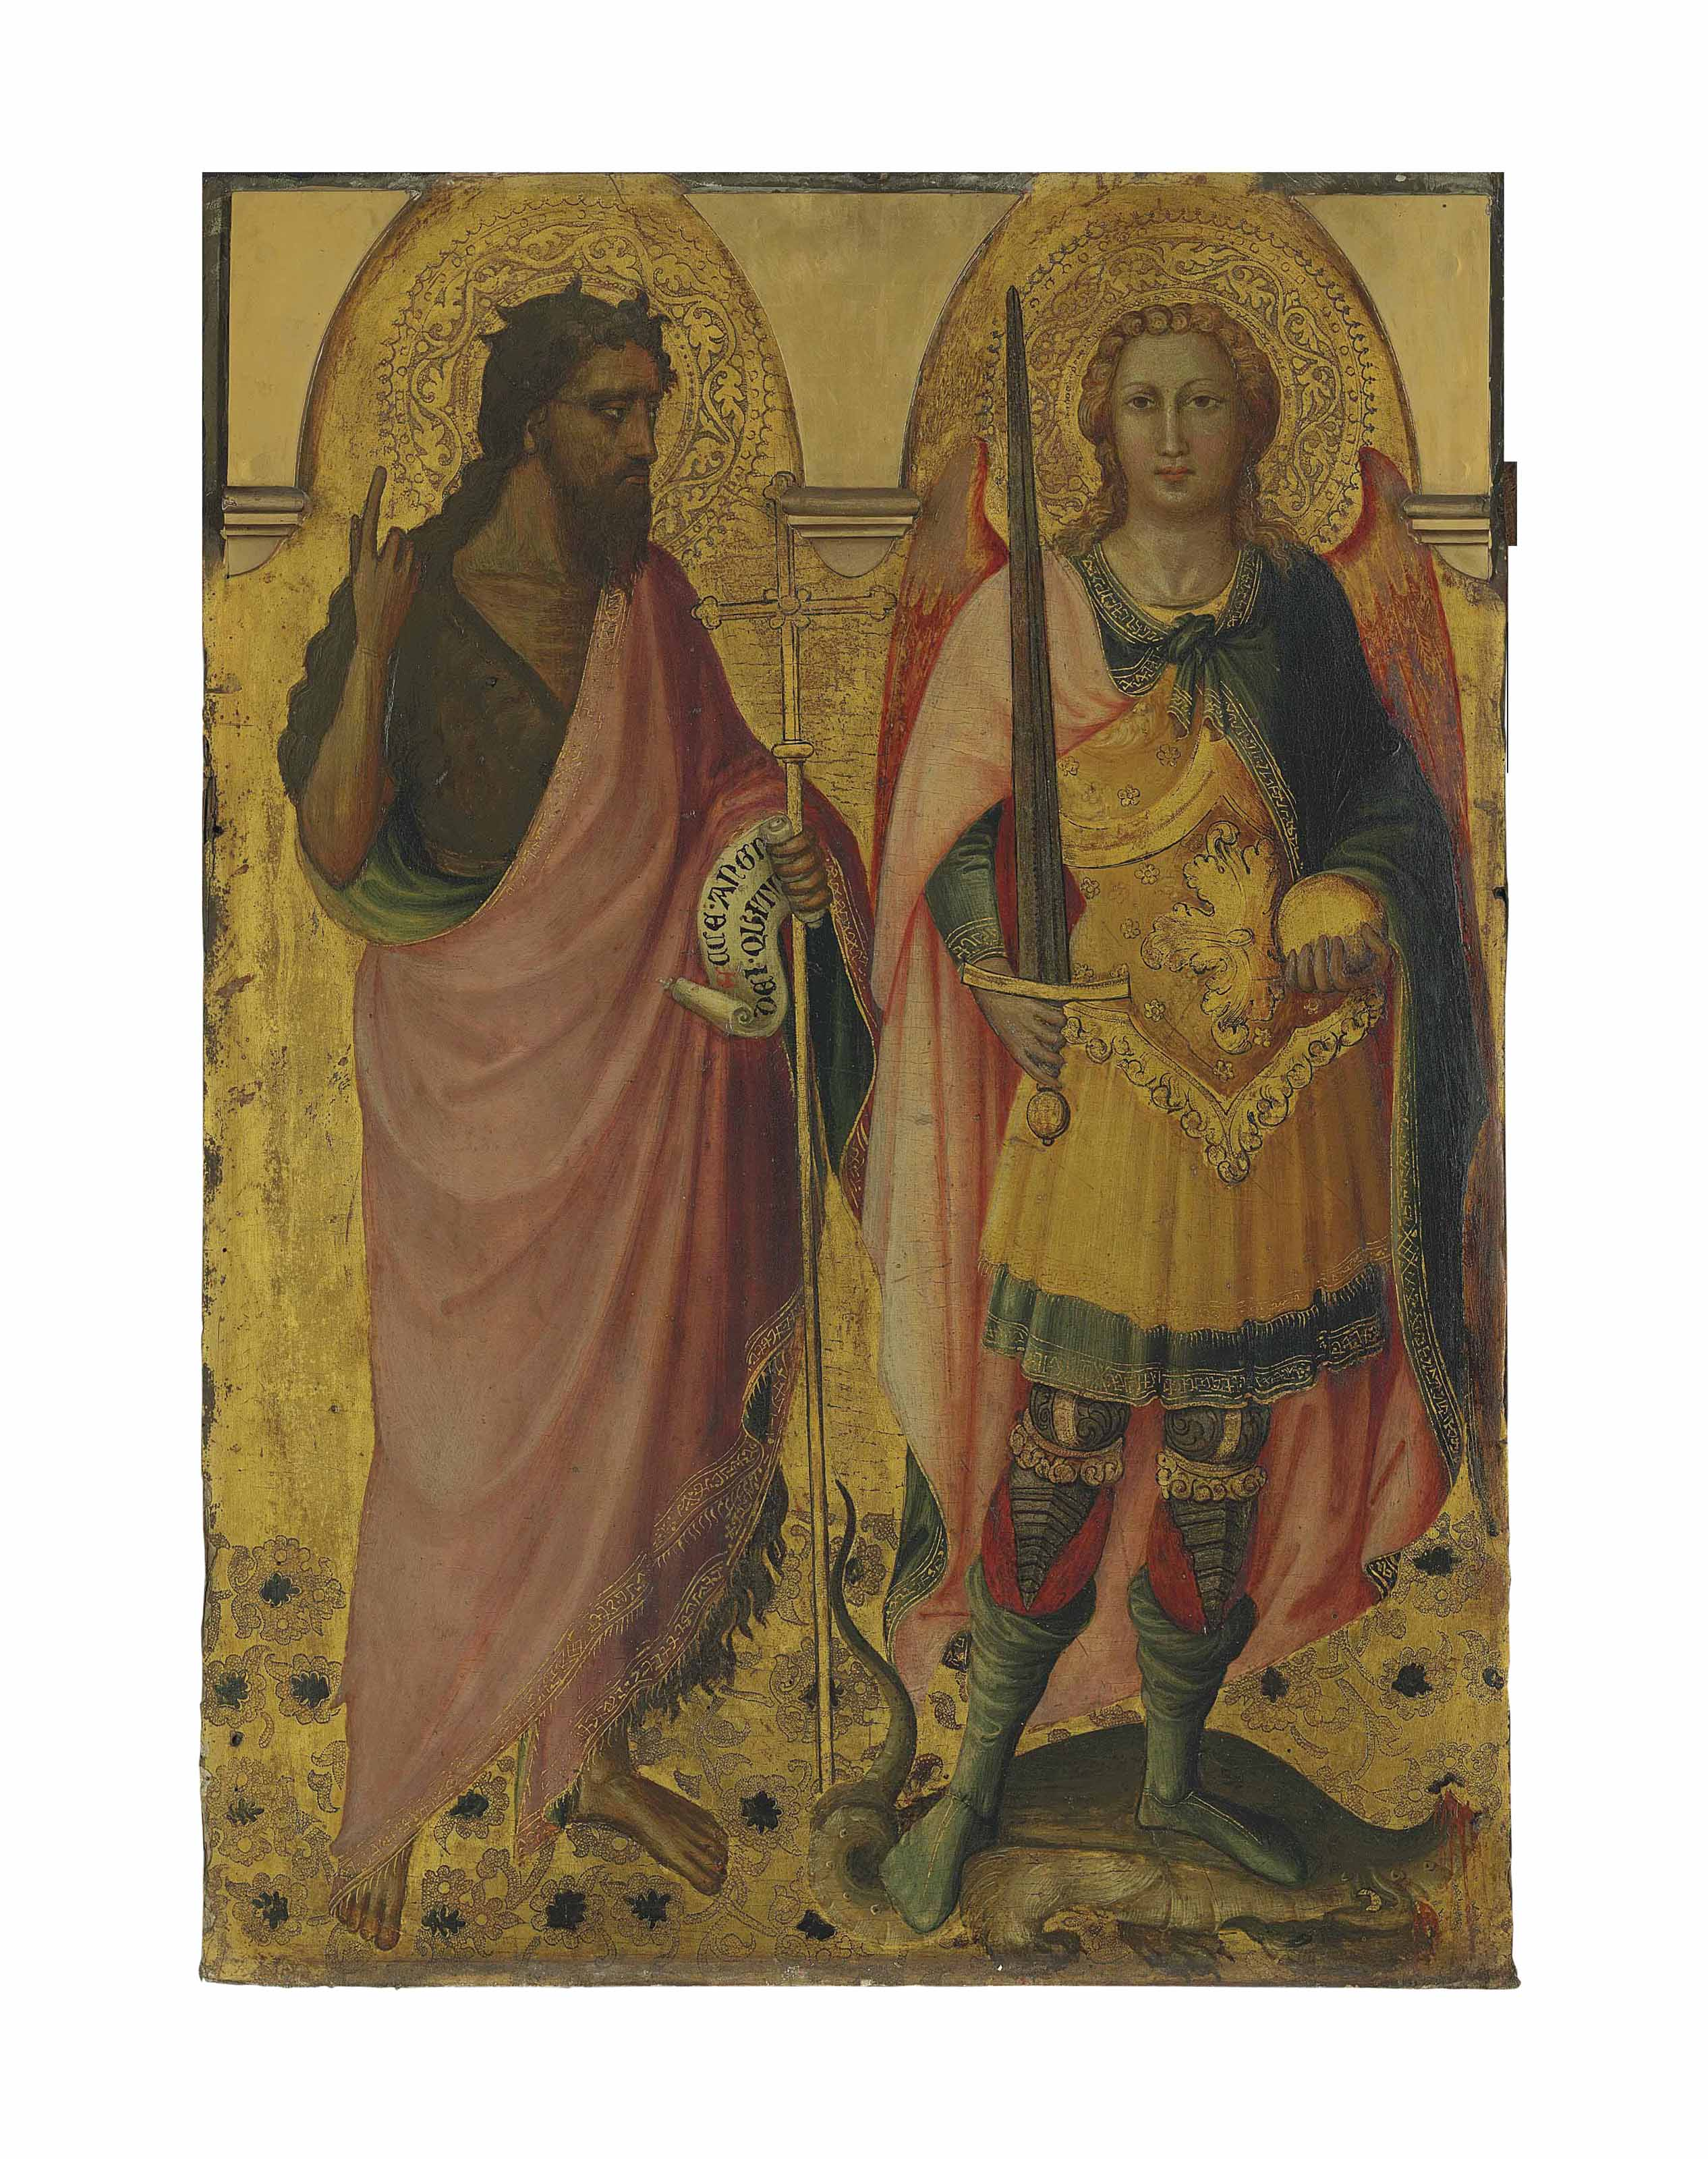 Saint John the Baptist and Saint Michael - left panel of the main tier of a polyptych